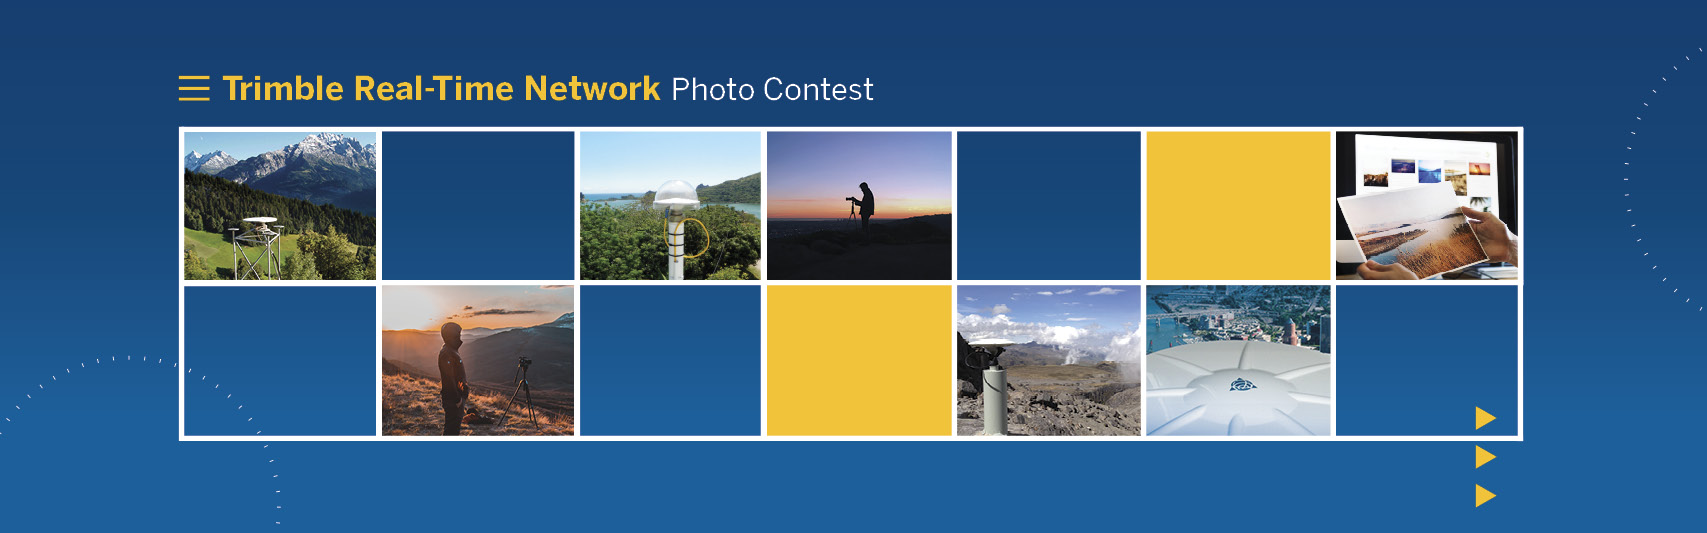 Trimble Real-Time Network Photo Contest